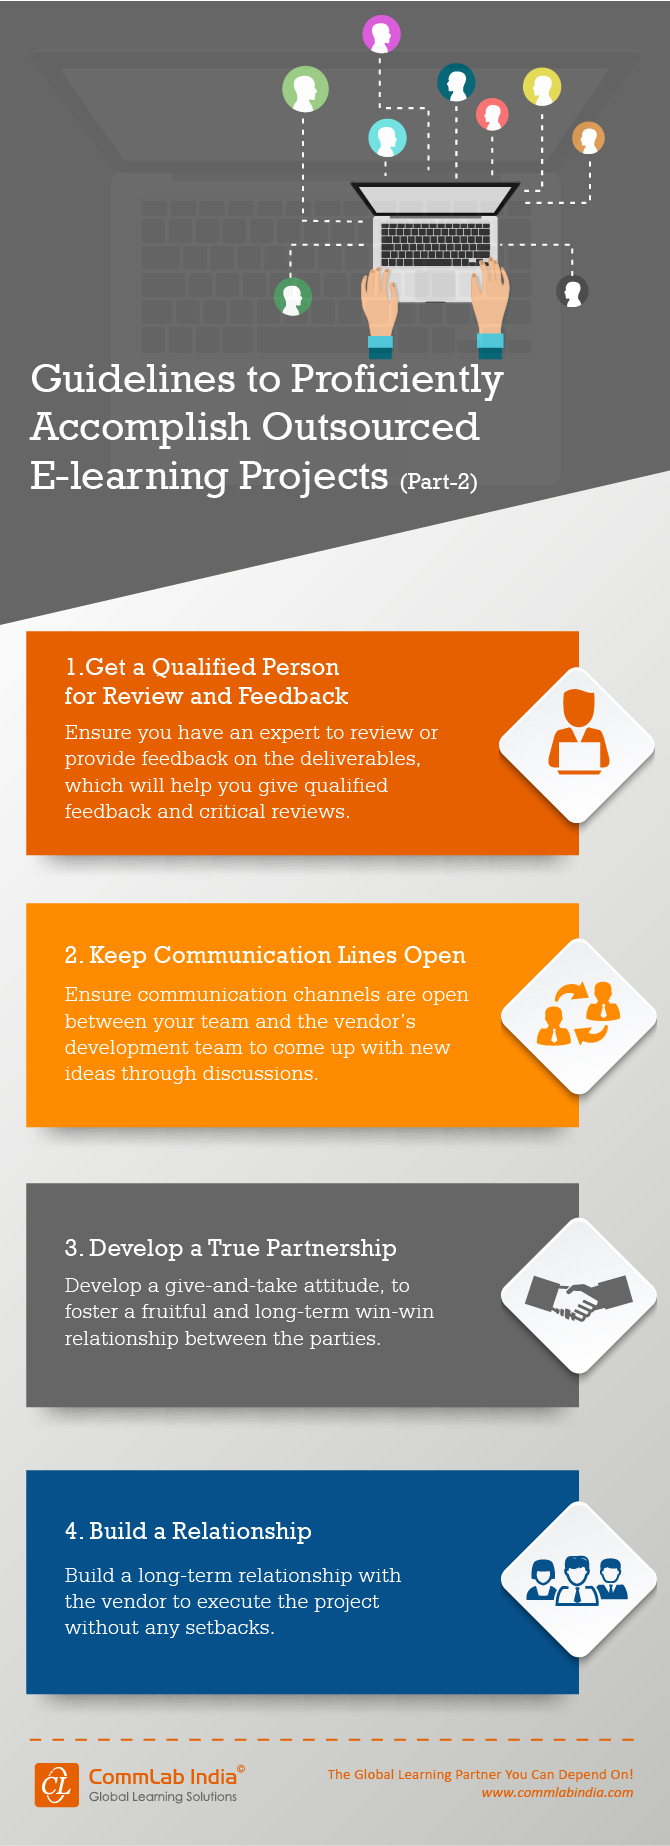 Guidelines to Accomplish Outsourced E-learning Projects Part-2 [Infographic]